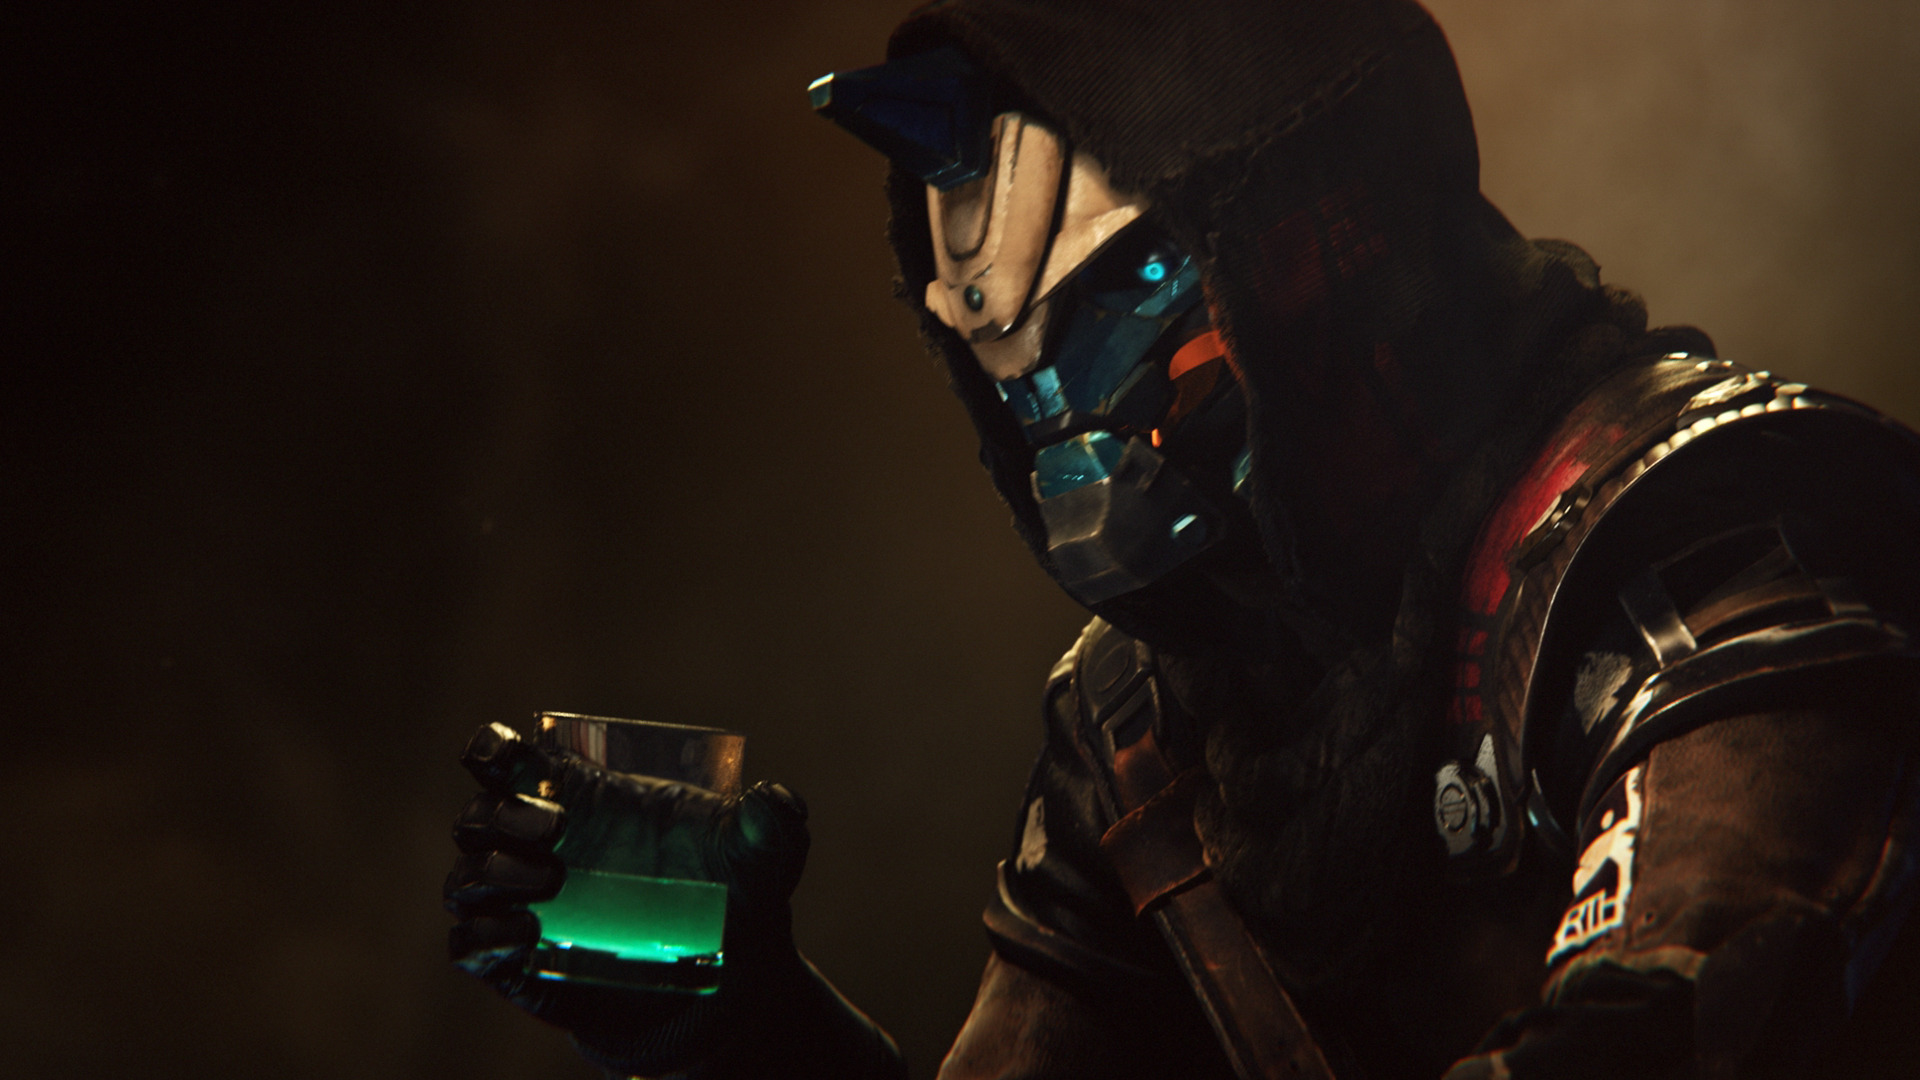 Destiny 2 Cayde 6 Wallpaper Posted By John Cunningham